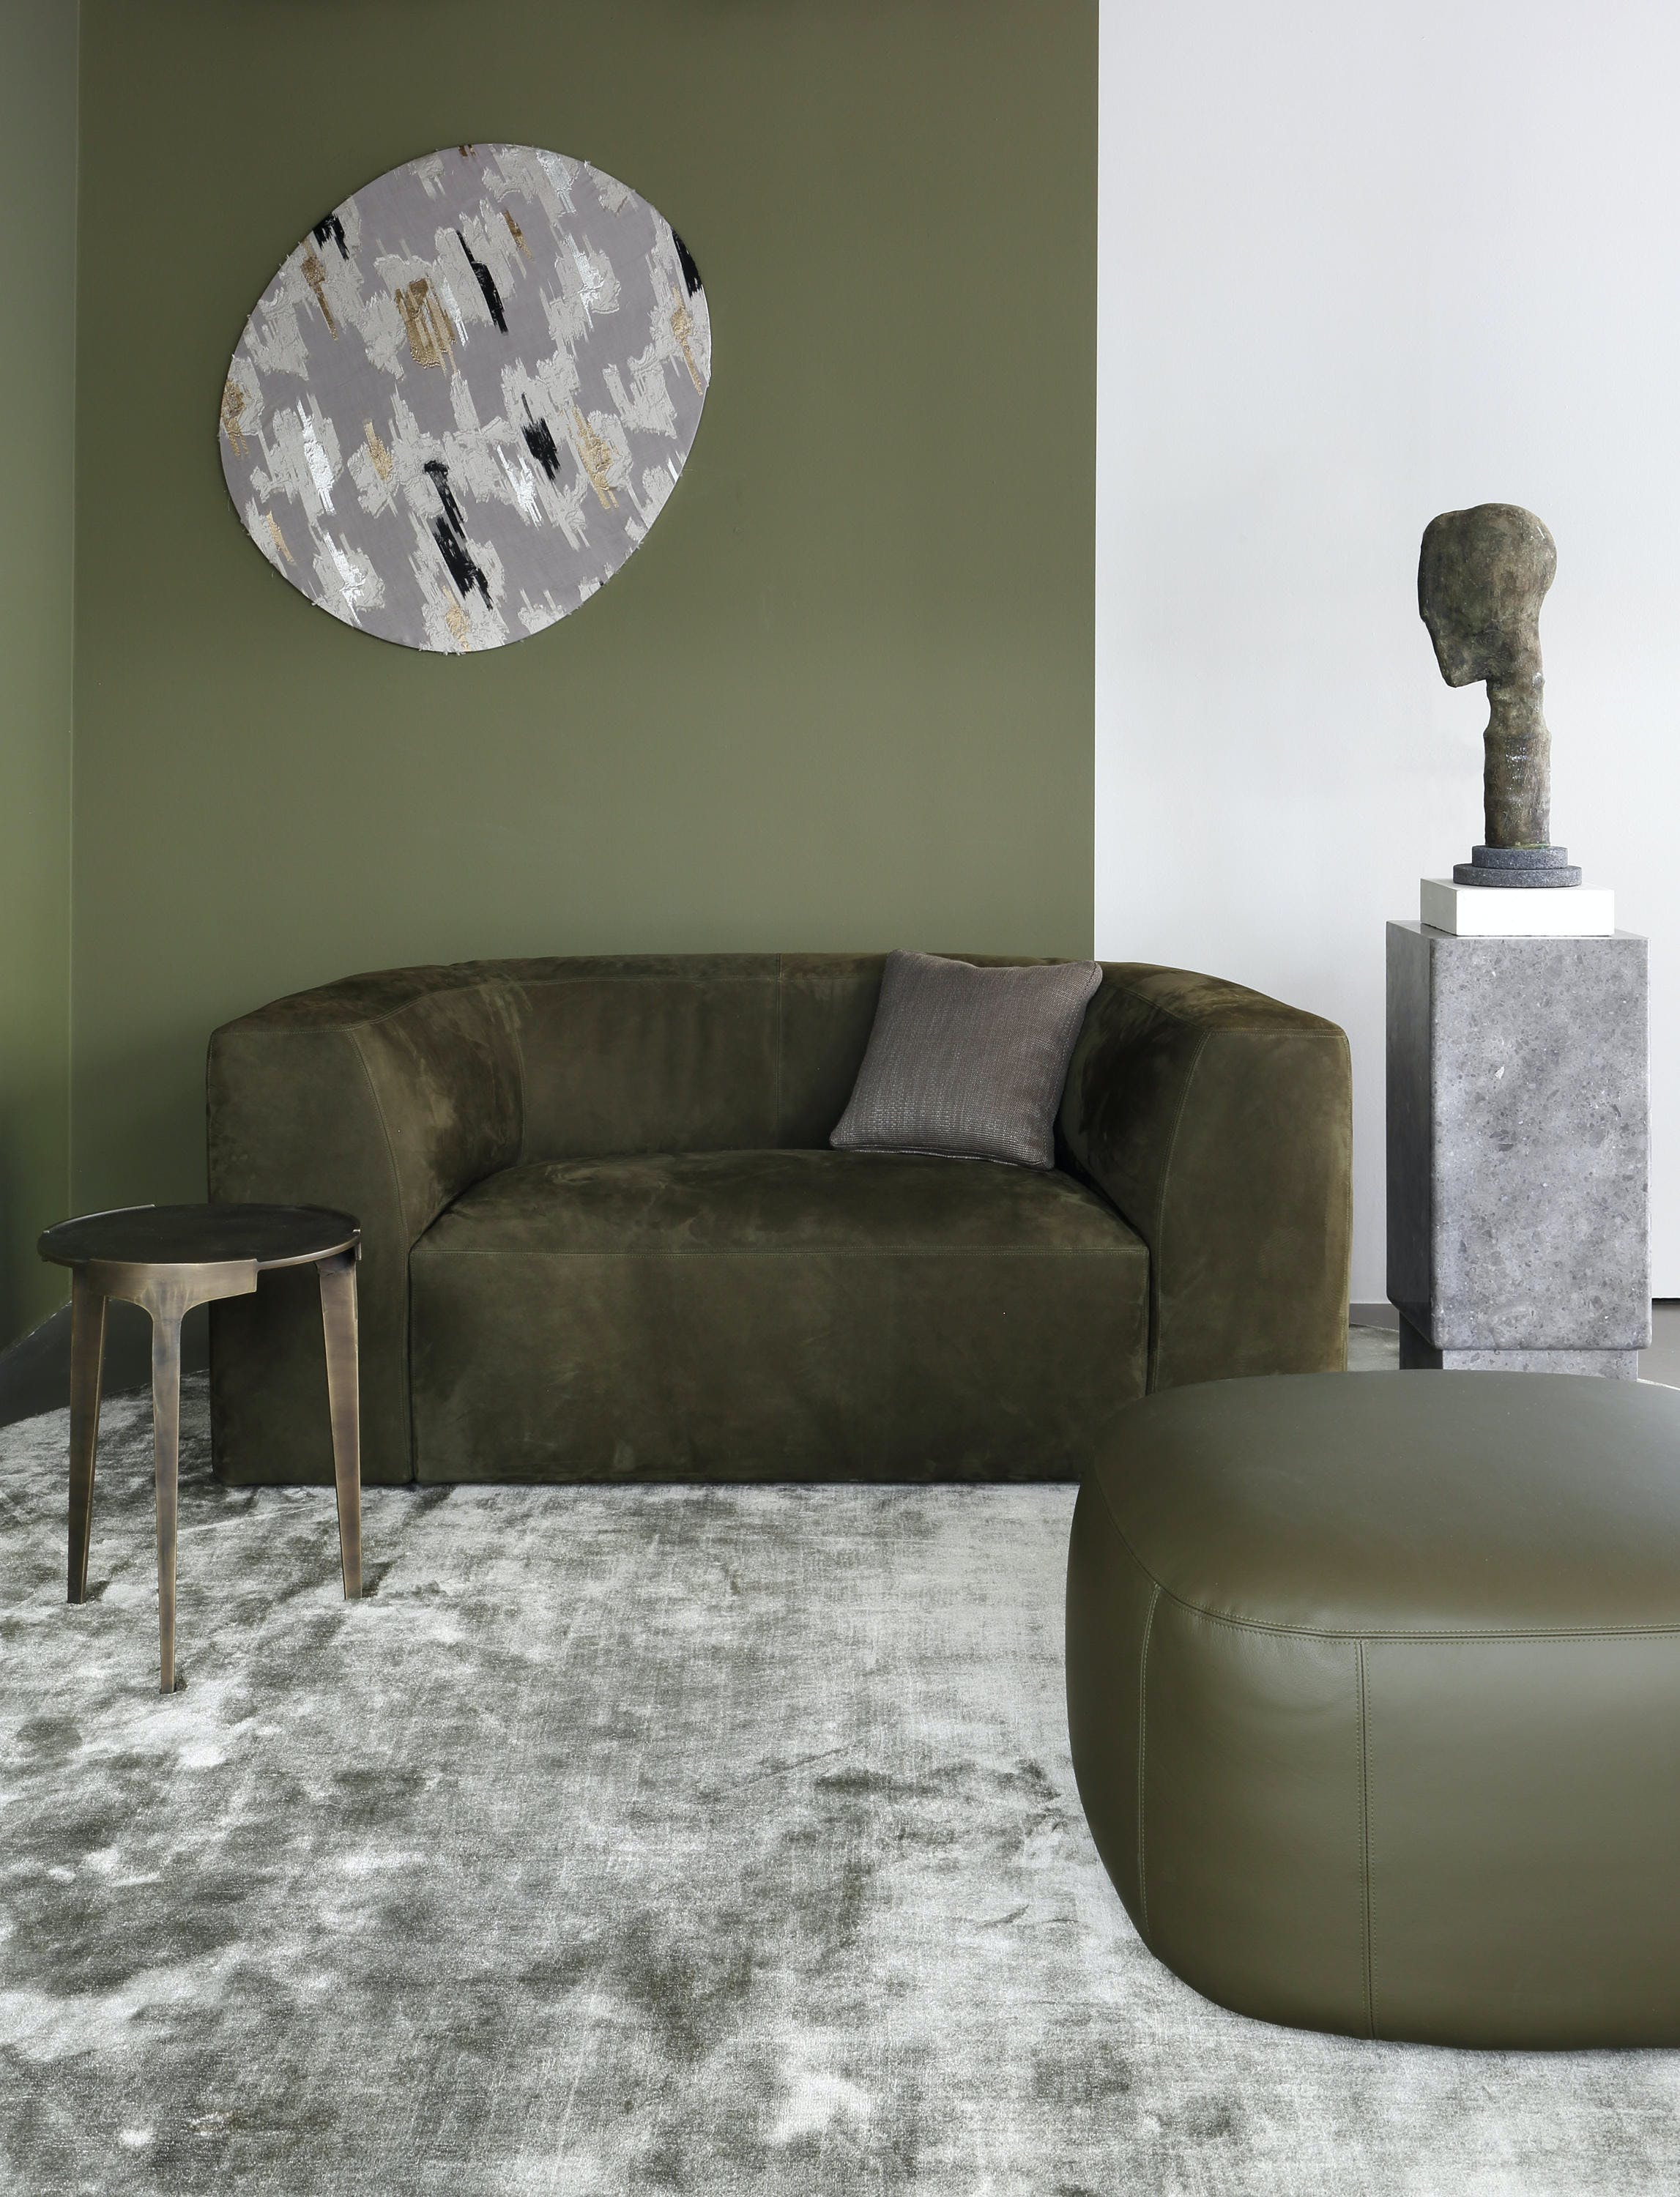 Hero Table By Piet Boon At Haute Living